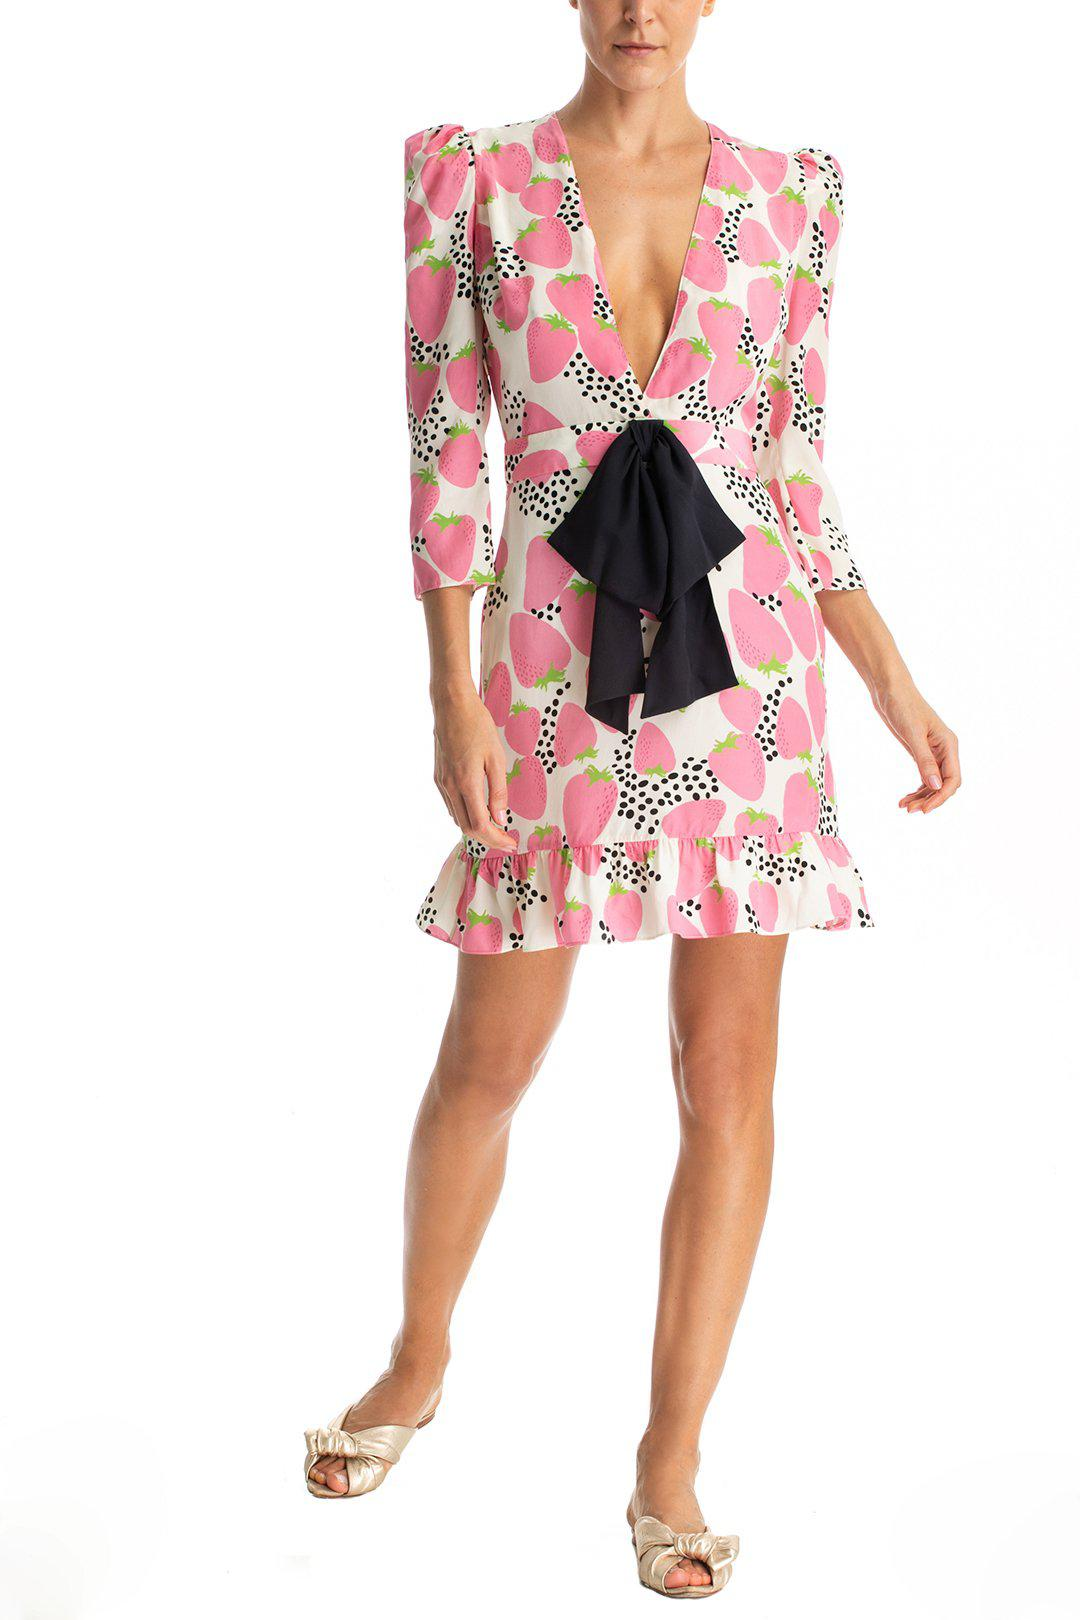 Strawberry Short Dress With Knot